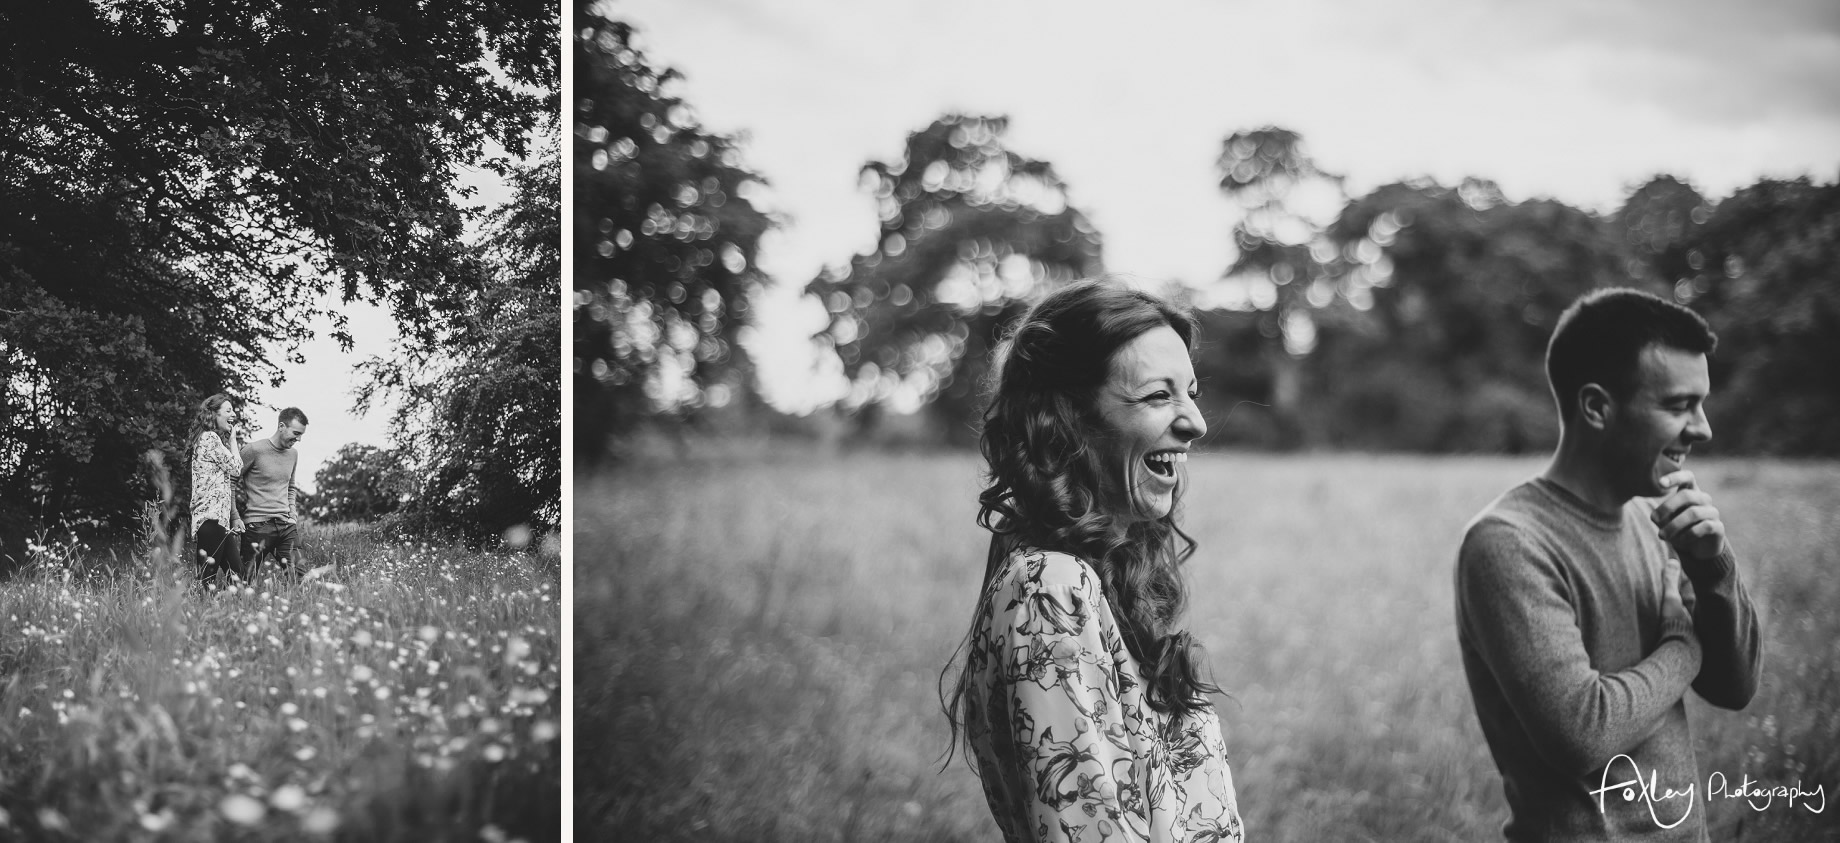 Rebecca-and-Dan-Pre-Wedding-Shoot-at-Preston-Guild-Wheel-001